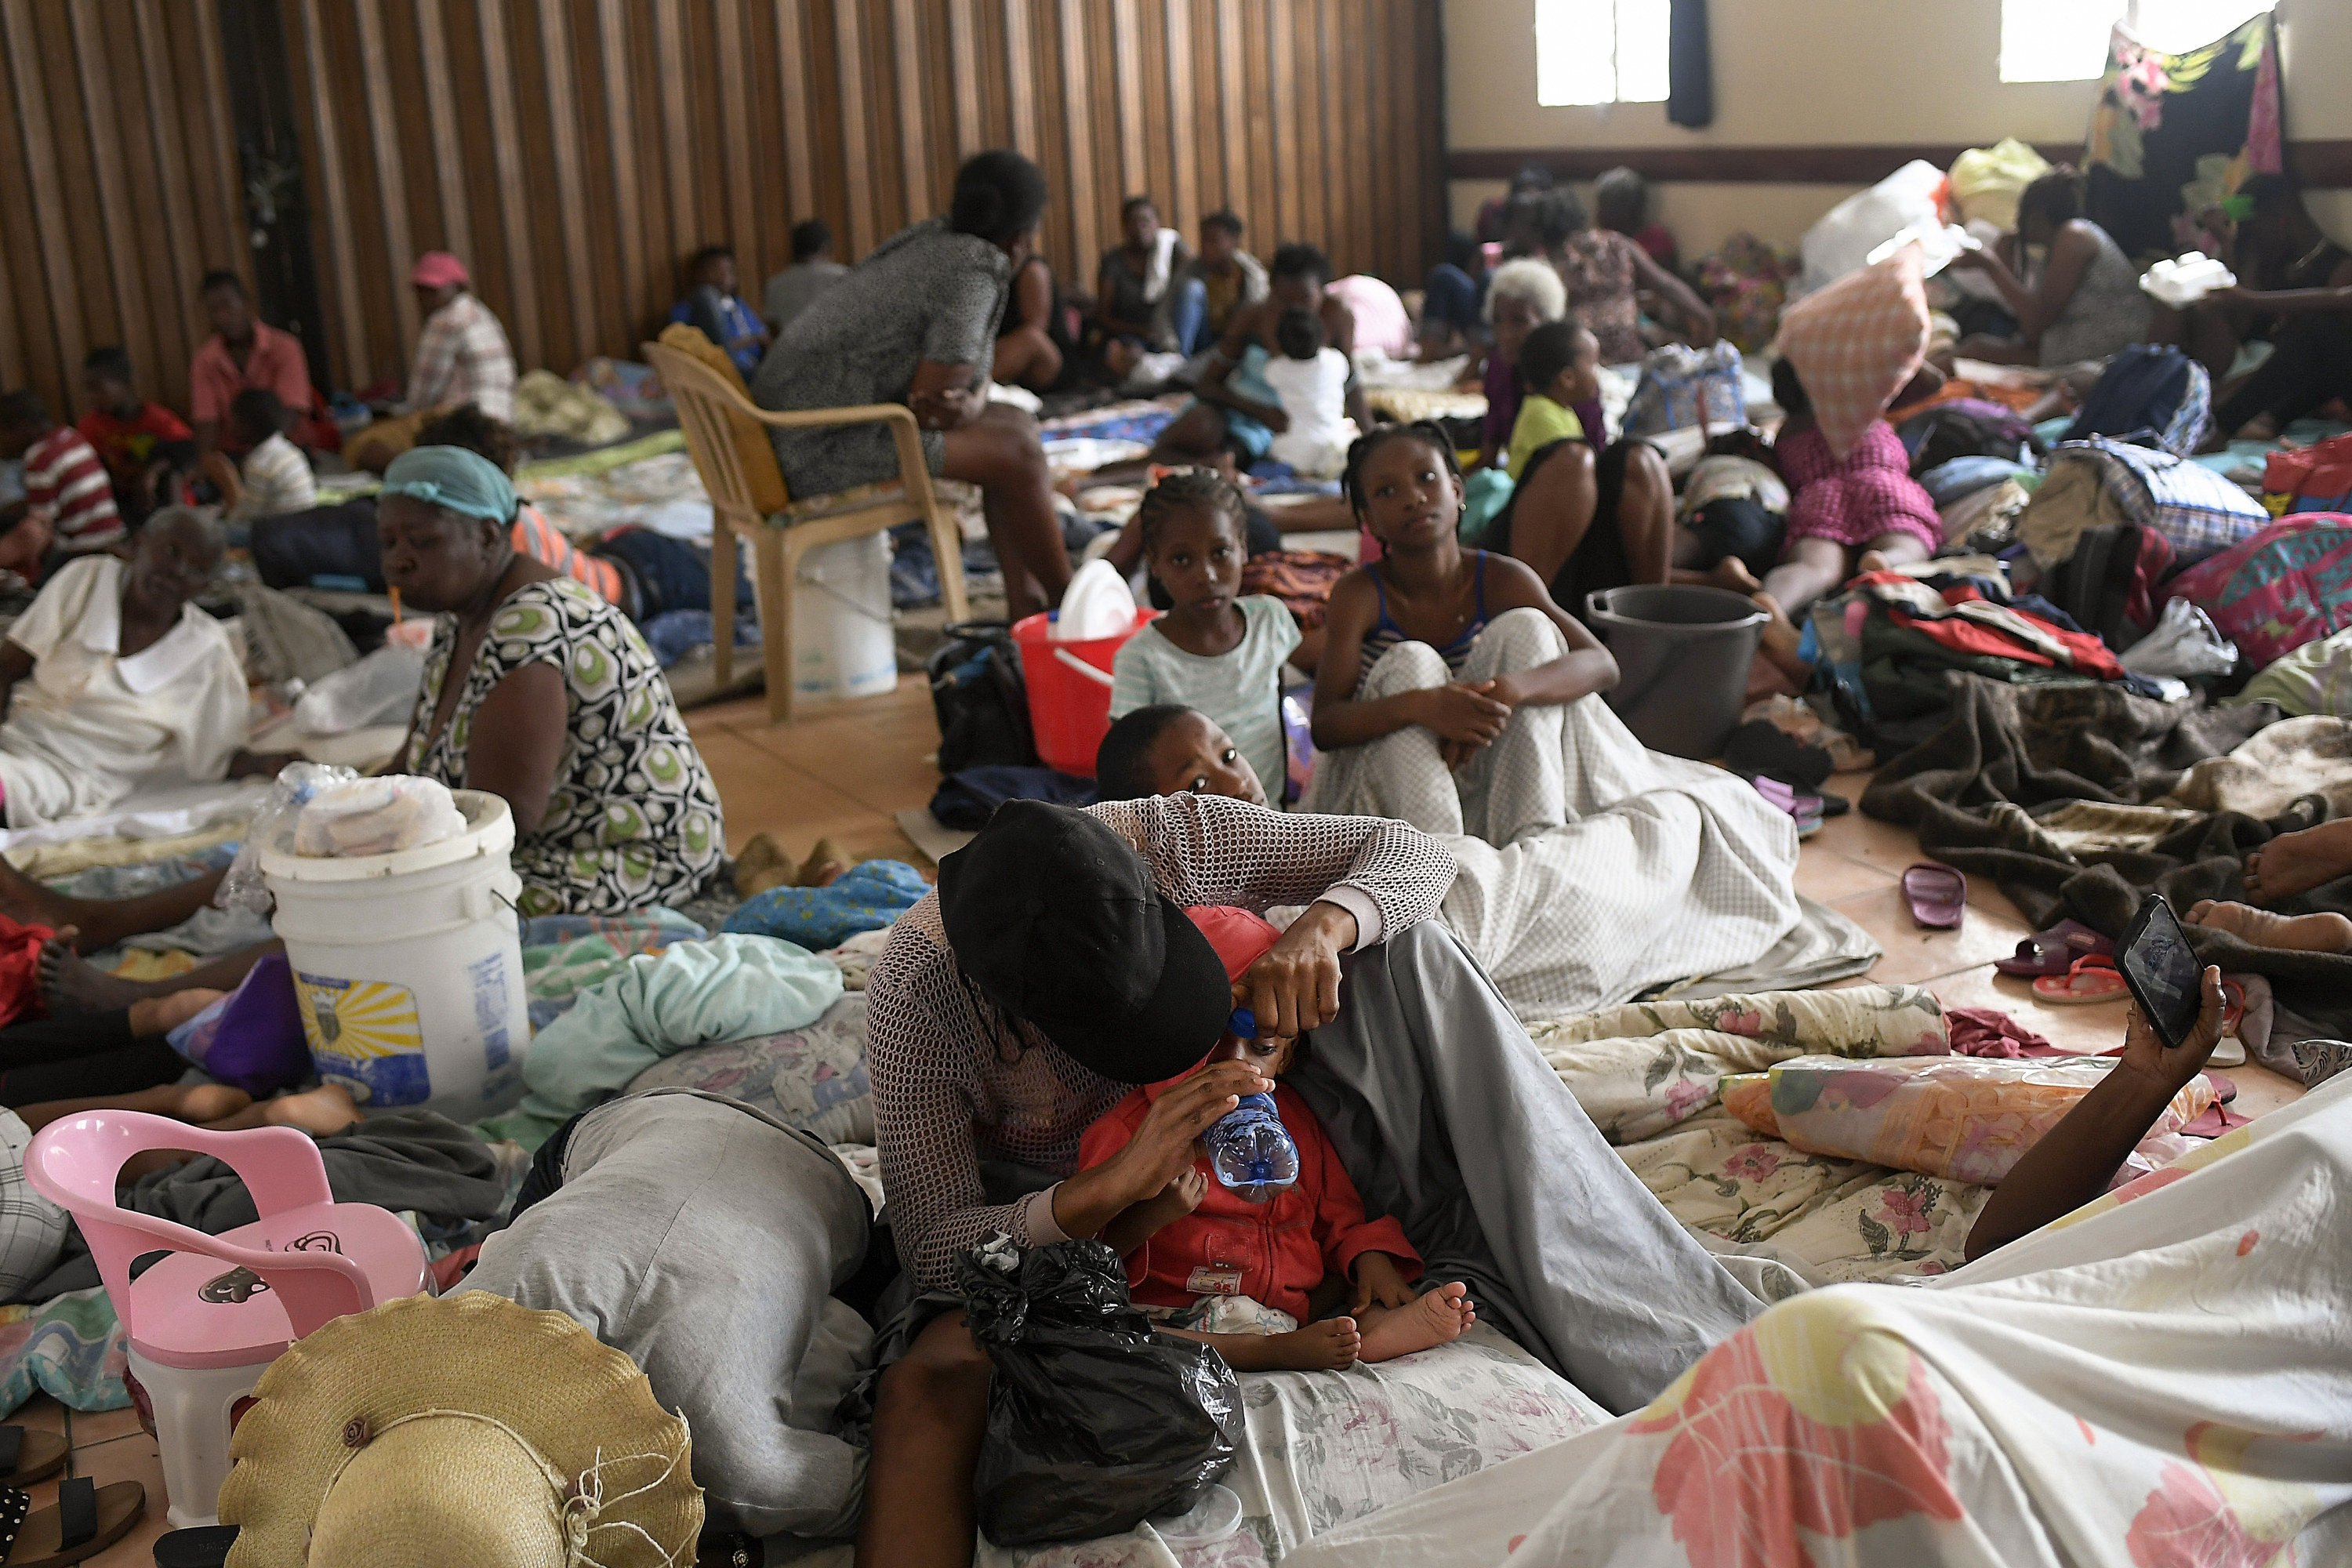 Children and families huddle together on the ground in an indoor shelter; in the foreground, an adult holds a water bottle up to a baby's mouth